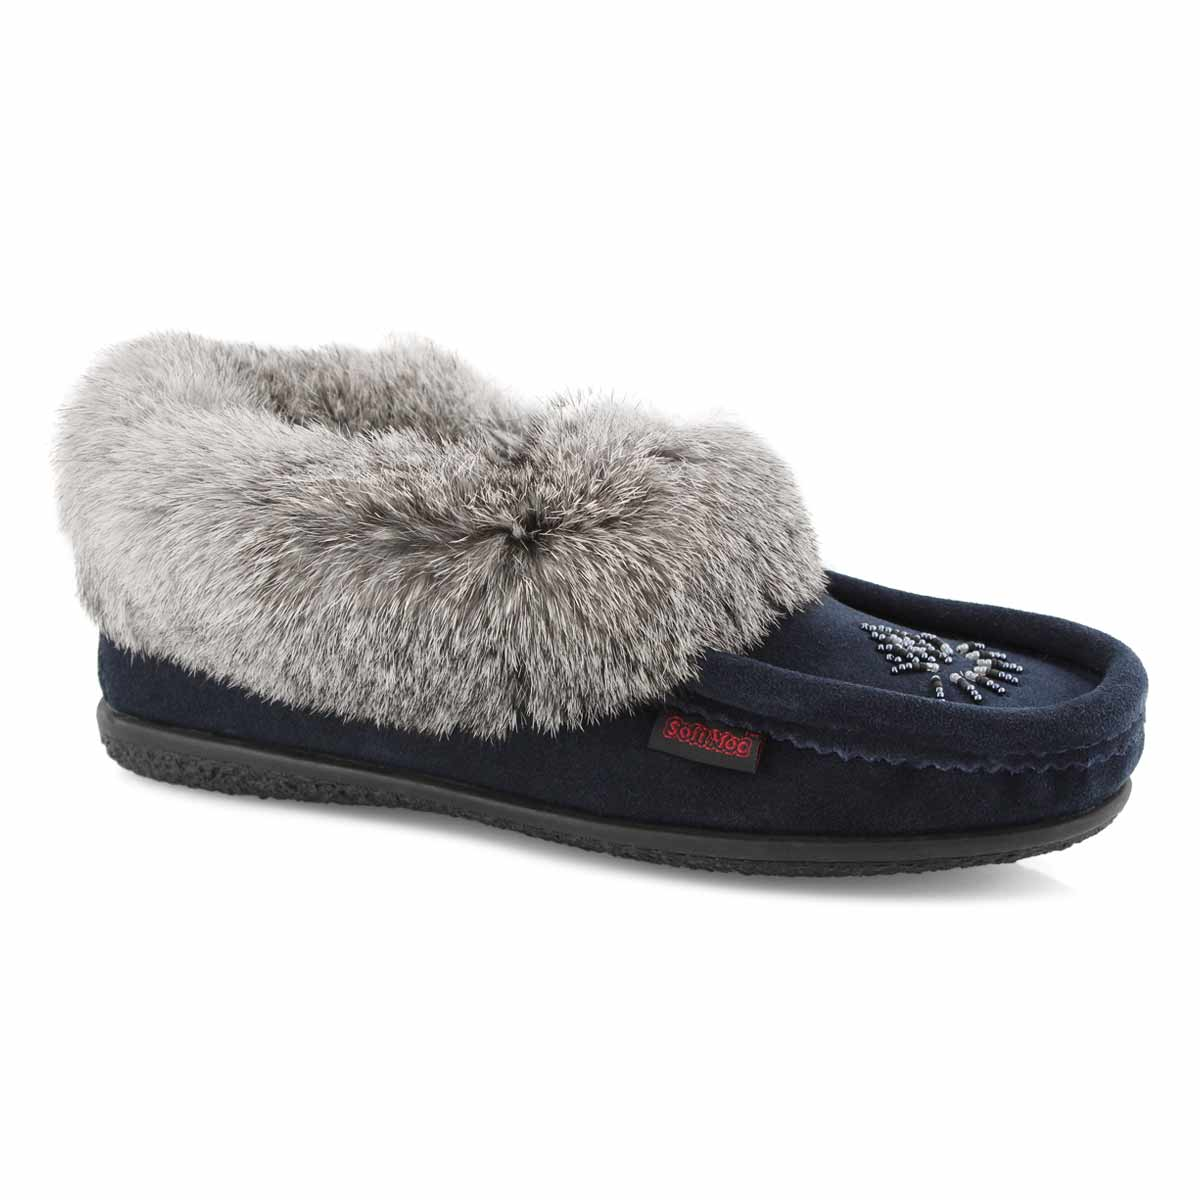 Lds Cute 4 navy rabbit fur moccasin